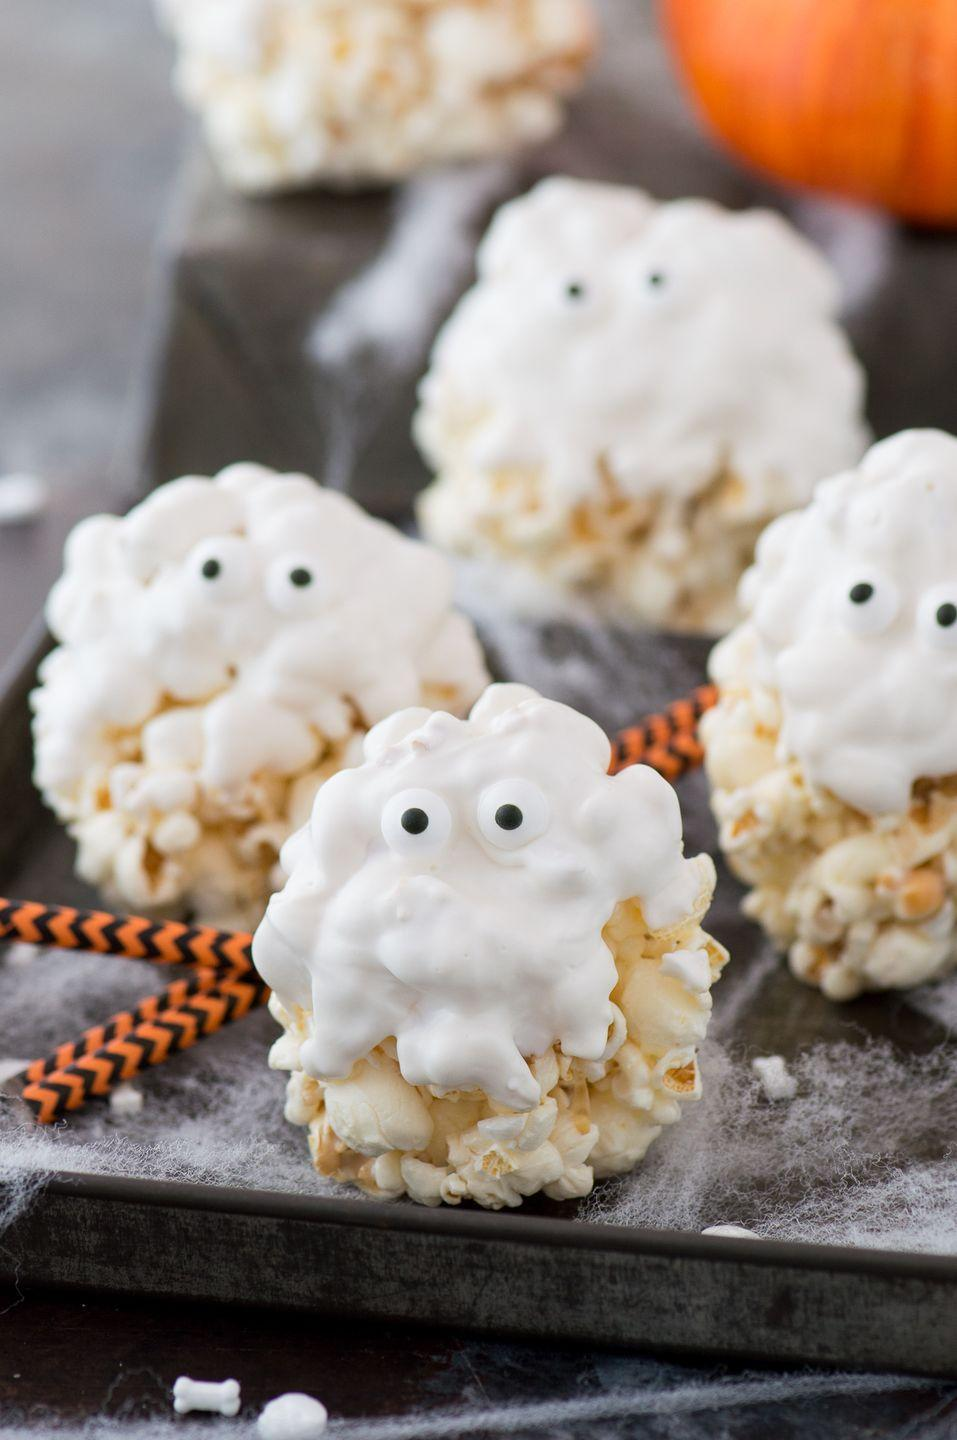 """<p>White candy melts make this five-ingredient treat look more ghostly, but you can use your favorite chocolate flavor.</p><p><strong>Get the recipe at <a href=""""https://thefirstyearblog.com/ghost-popcorn-balls/"""" rel=""""nofollow noopener"""" target=""""_blank"""" data-ylk=""""slk:The First Year"""" class=""""link rapid-noclick-resp"""">The First Year</a>.</strong> </p>"""